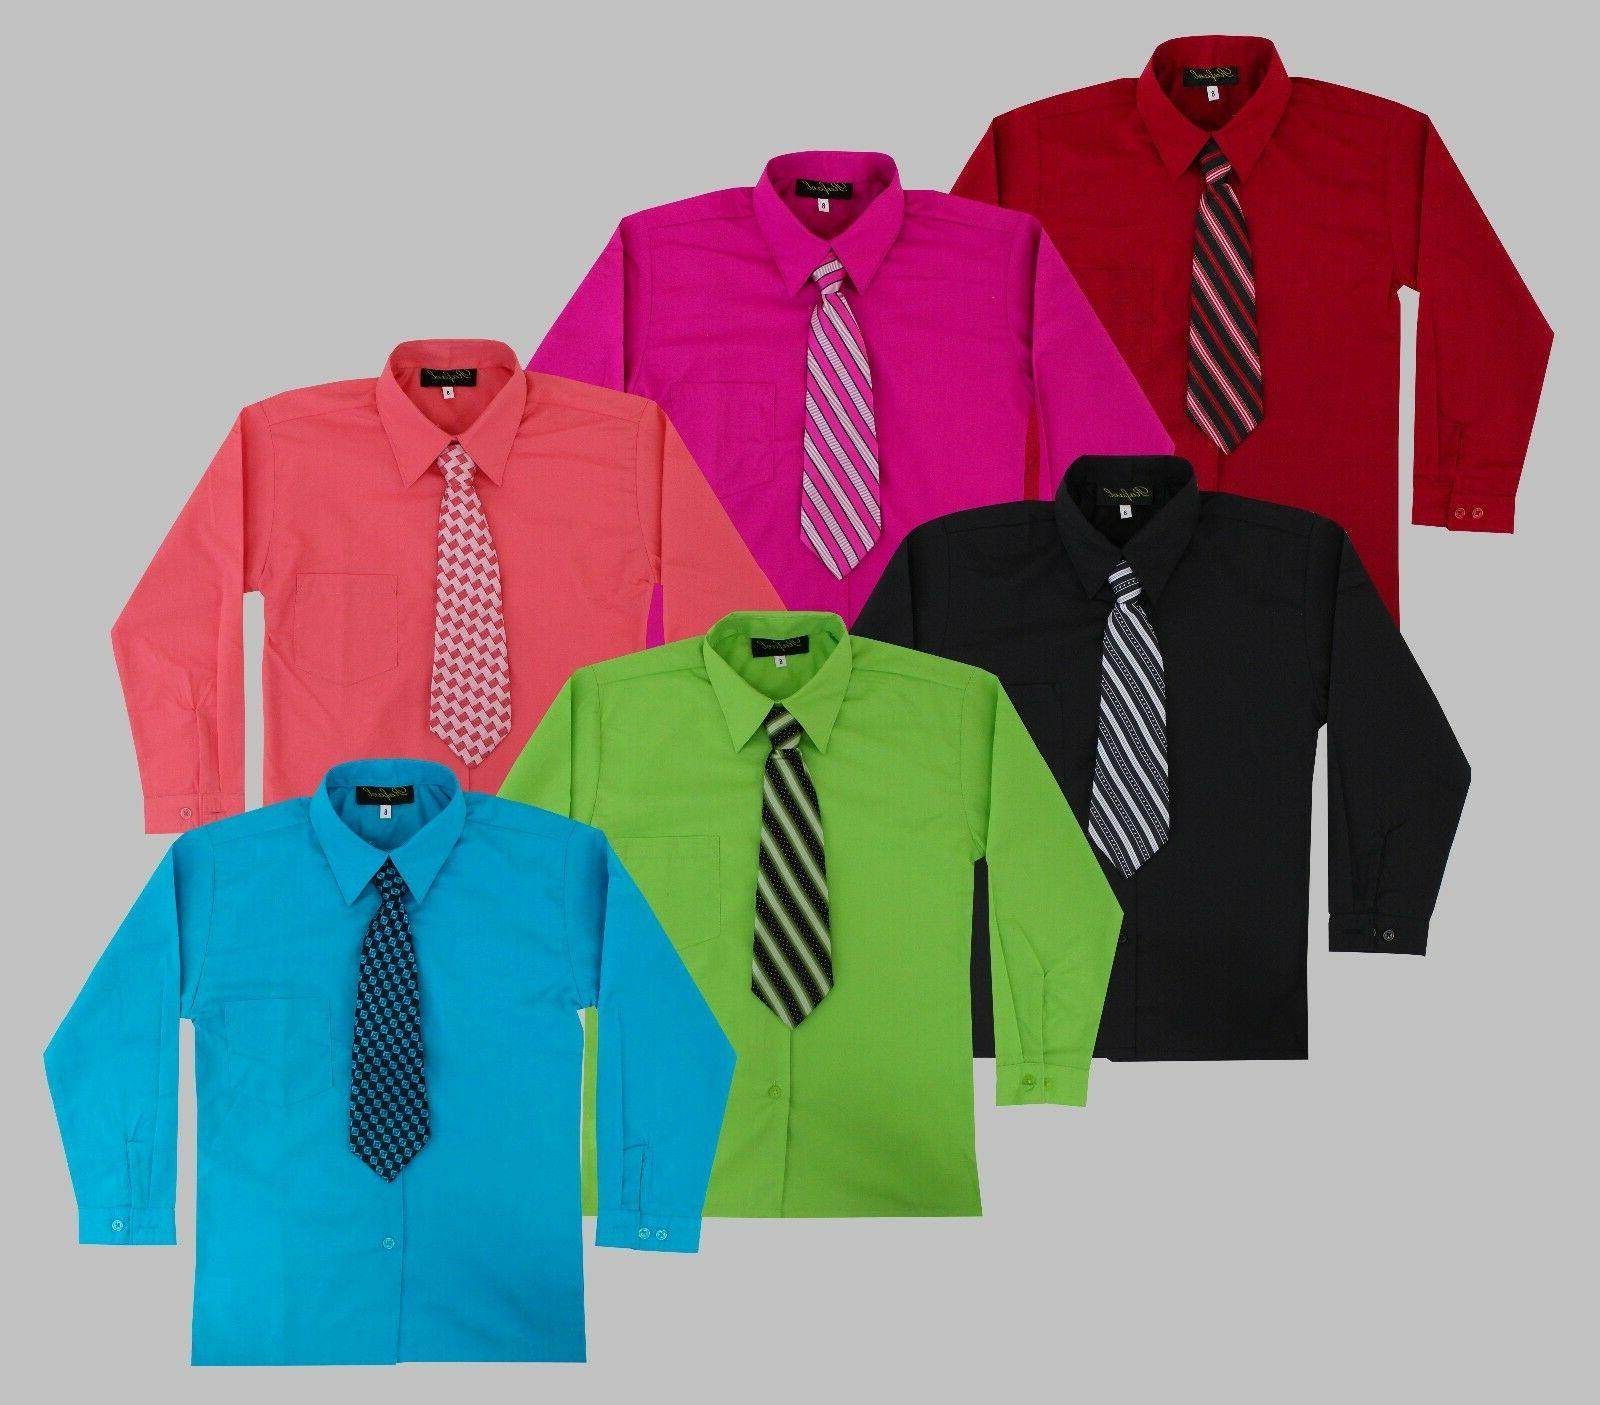 Boys Long Sleeve Dress Shirt with Matching Tie Set Size 2T-1